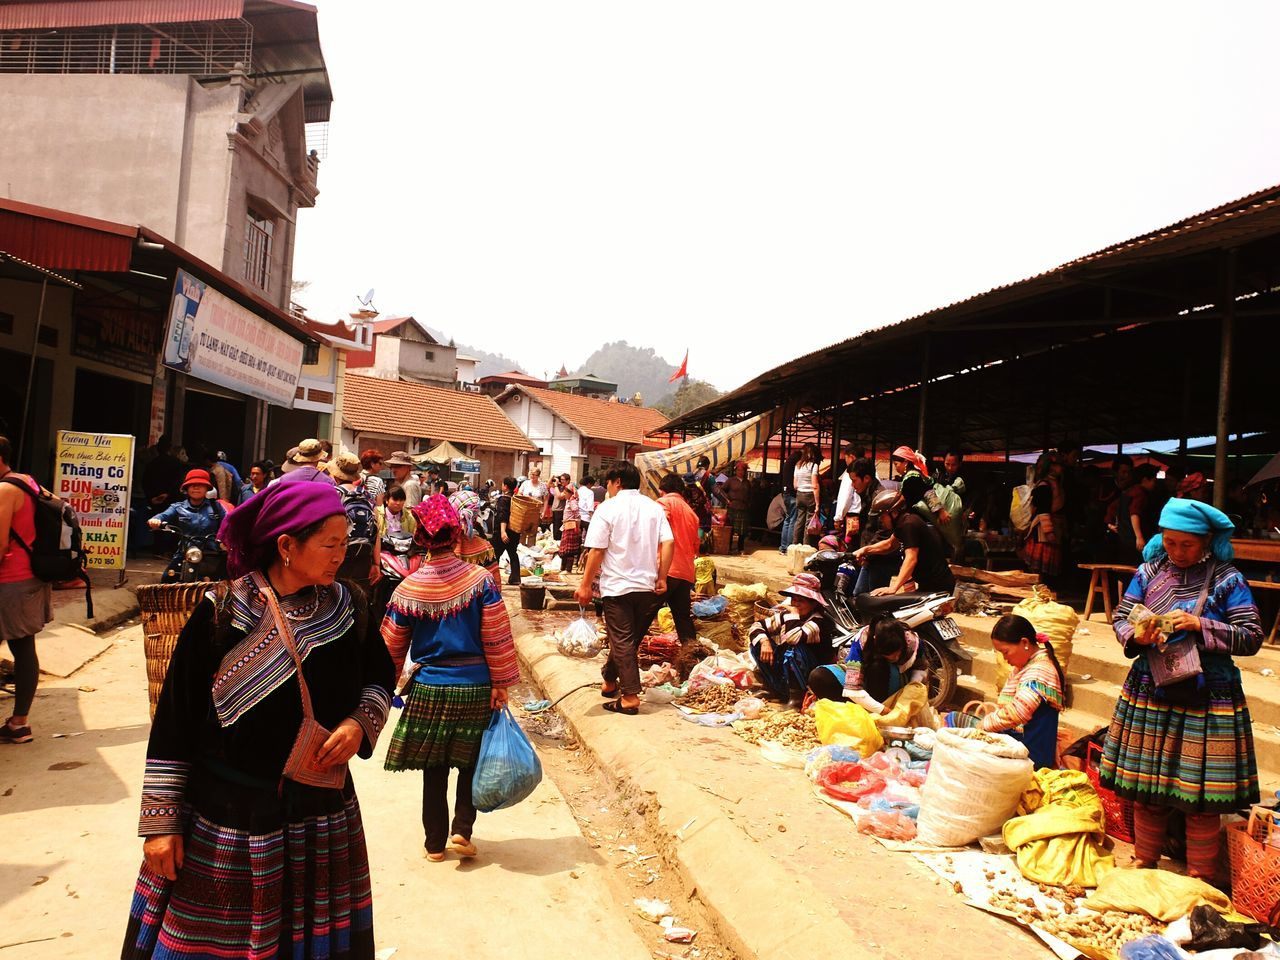 large group of people, real people, market, men, market stall, retail, market vendor, women, built structure, small business, building exterior, outdoors, architecture, day, lifestyles, clear sky, farmer market, group of people, food, crowd, freshness, city, sky, adult, people